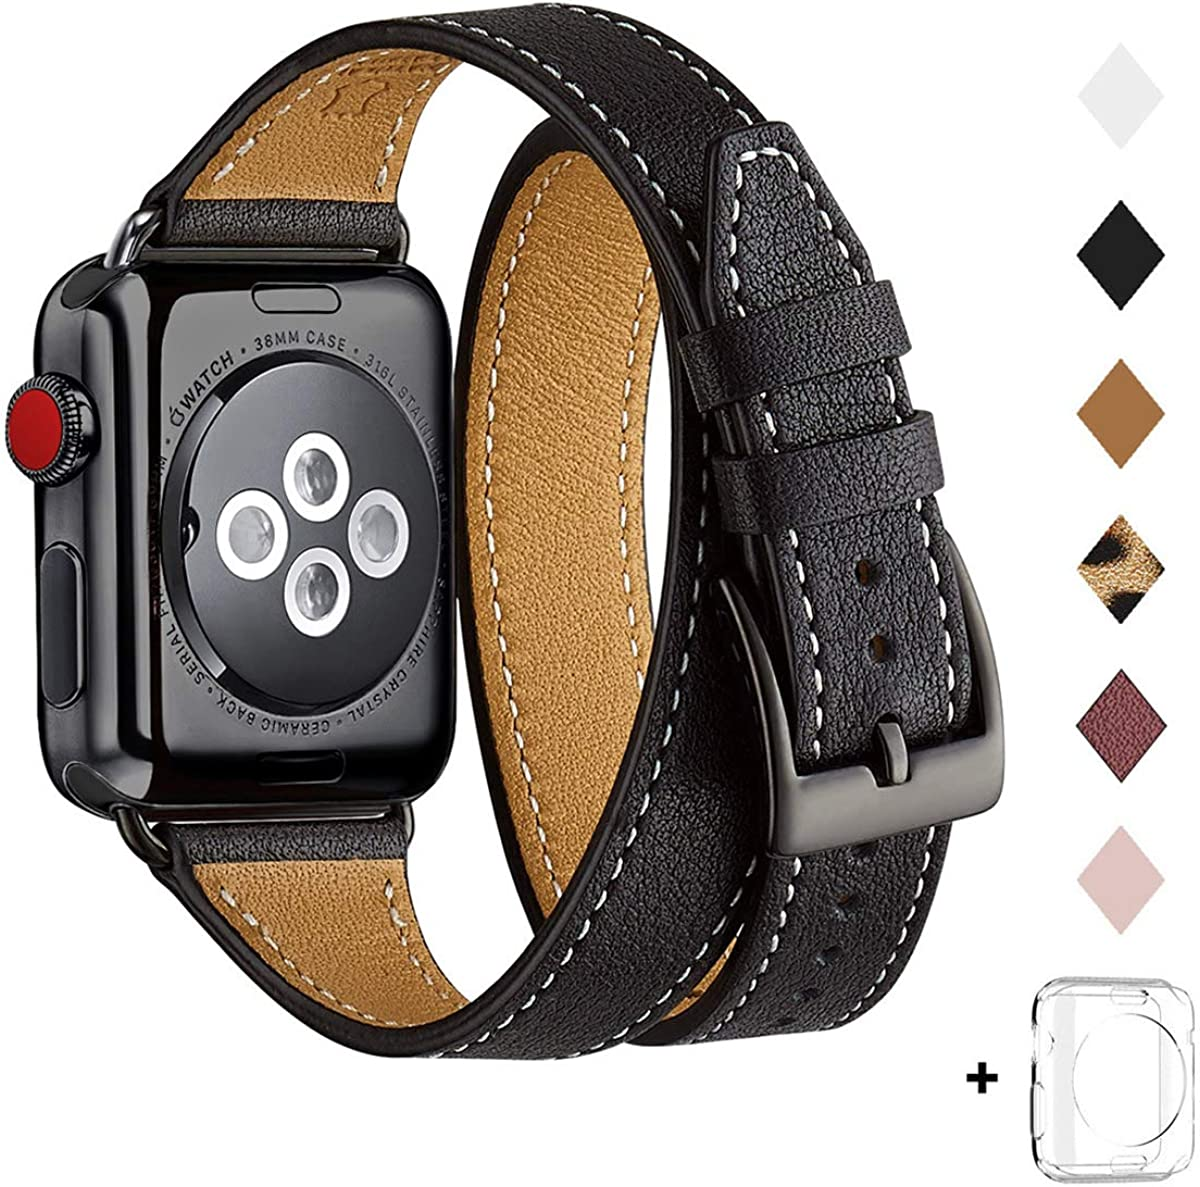 Bestig Band Compatible for Apple Watch 42mm 44mm, Genuine Leather Double Tour Designed Slim Replacement iwatch Strap for iWatch SE,Series 6/5/4/3/2/1 (Black Band+Black, 42mm 44mm)